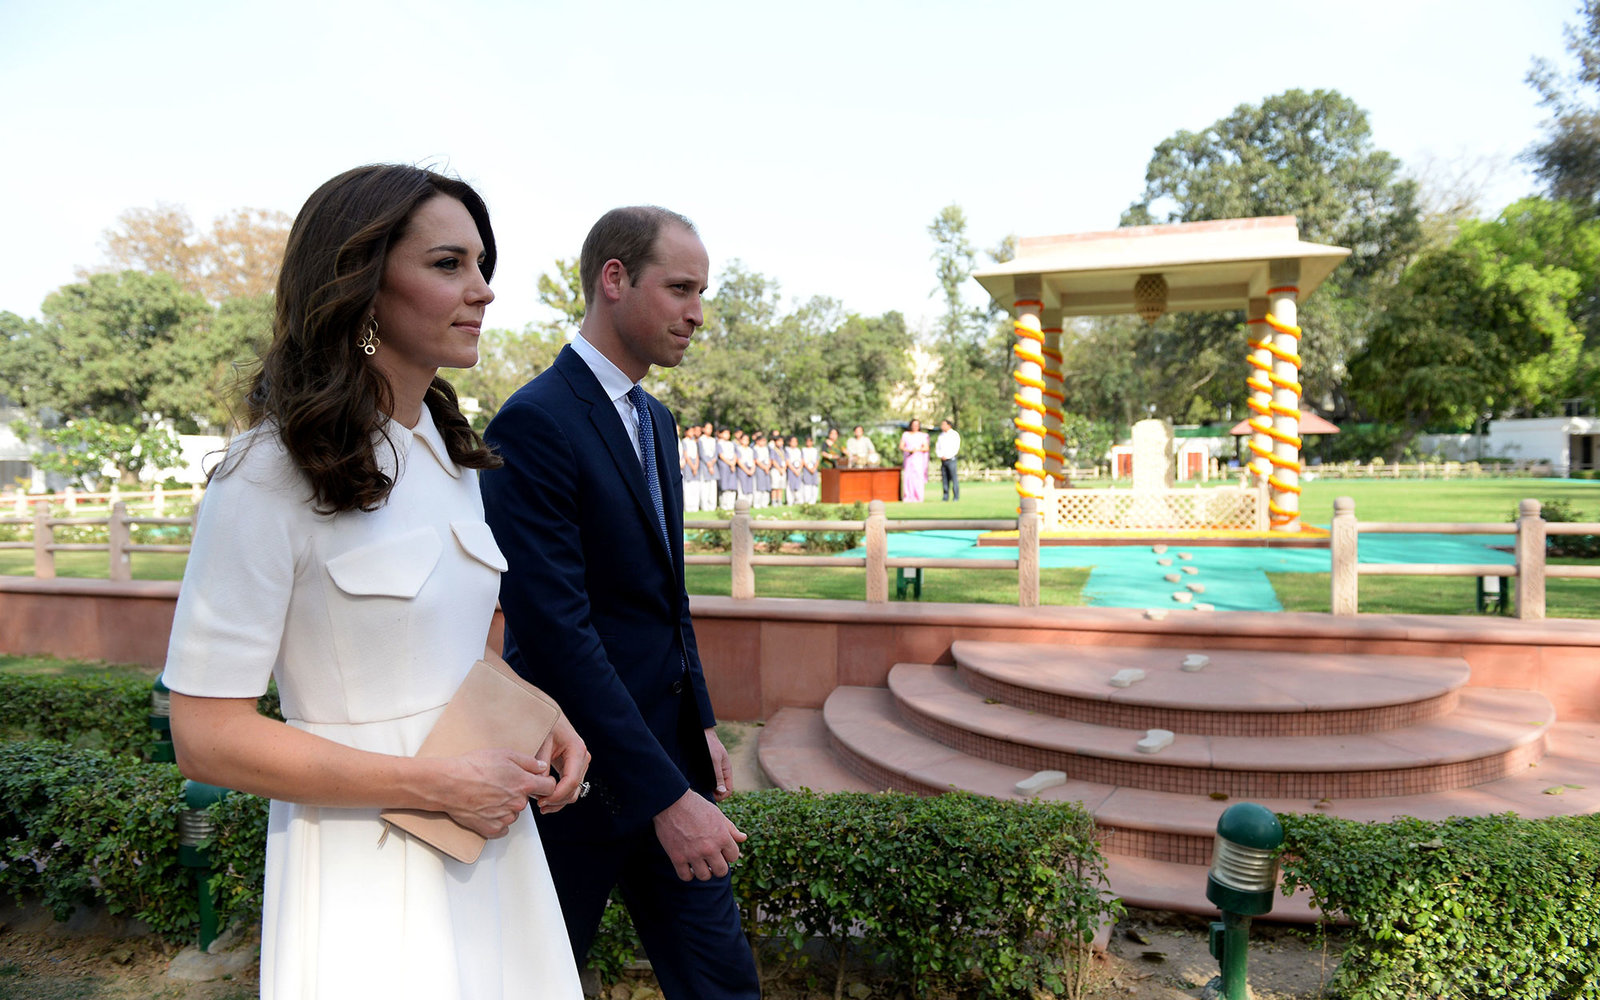 Britain's Prince William, Duke of Cambridge(R)and his wife Catherine, Duchess of Cambridge walk as they pay tribute during a visit to Gandhi Smiriti, an Indian museum dedicated to Mahatma Gandhi in New Delhi on April 11, 2016. / AFP / PRAKASH SINGH